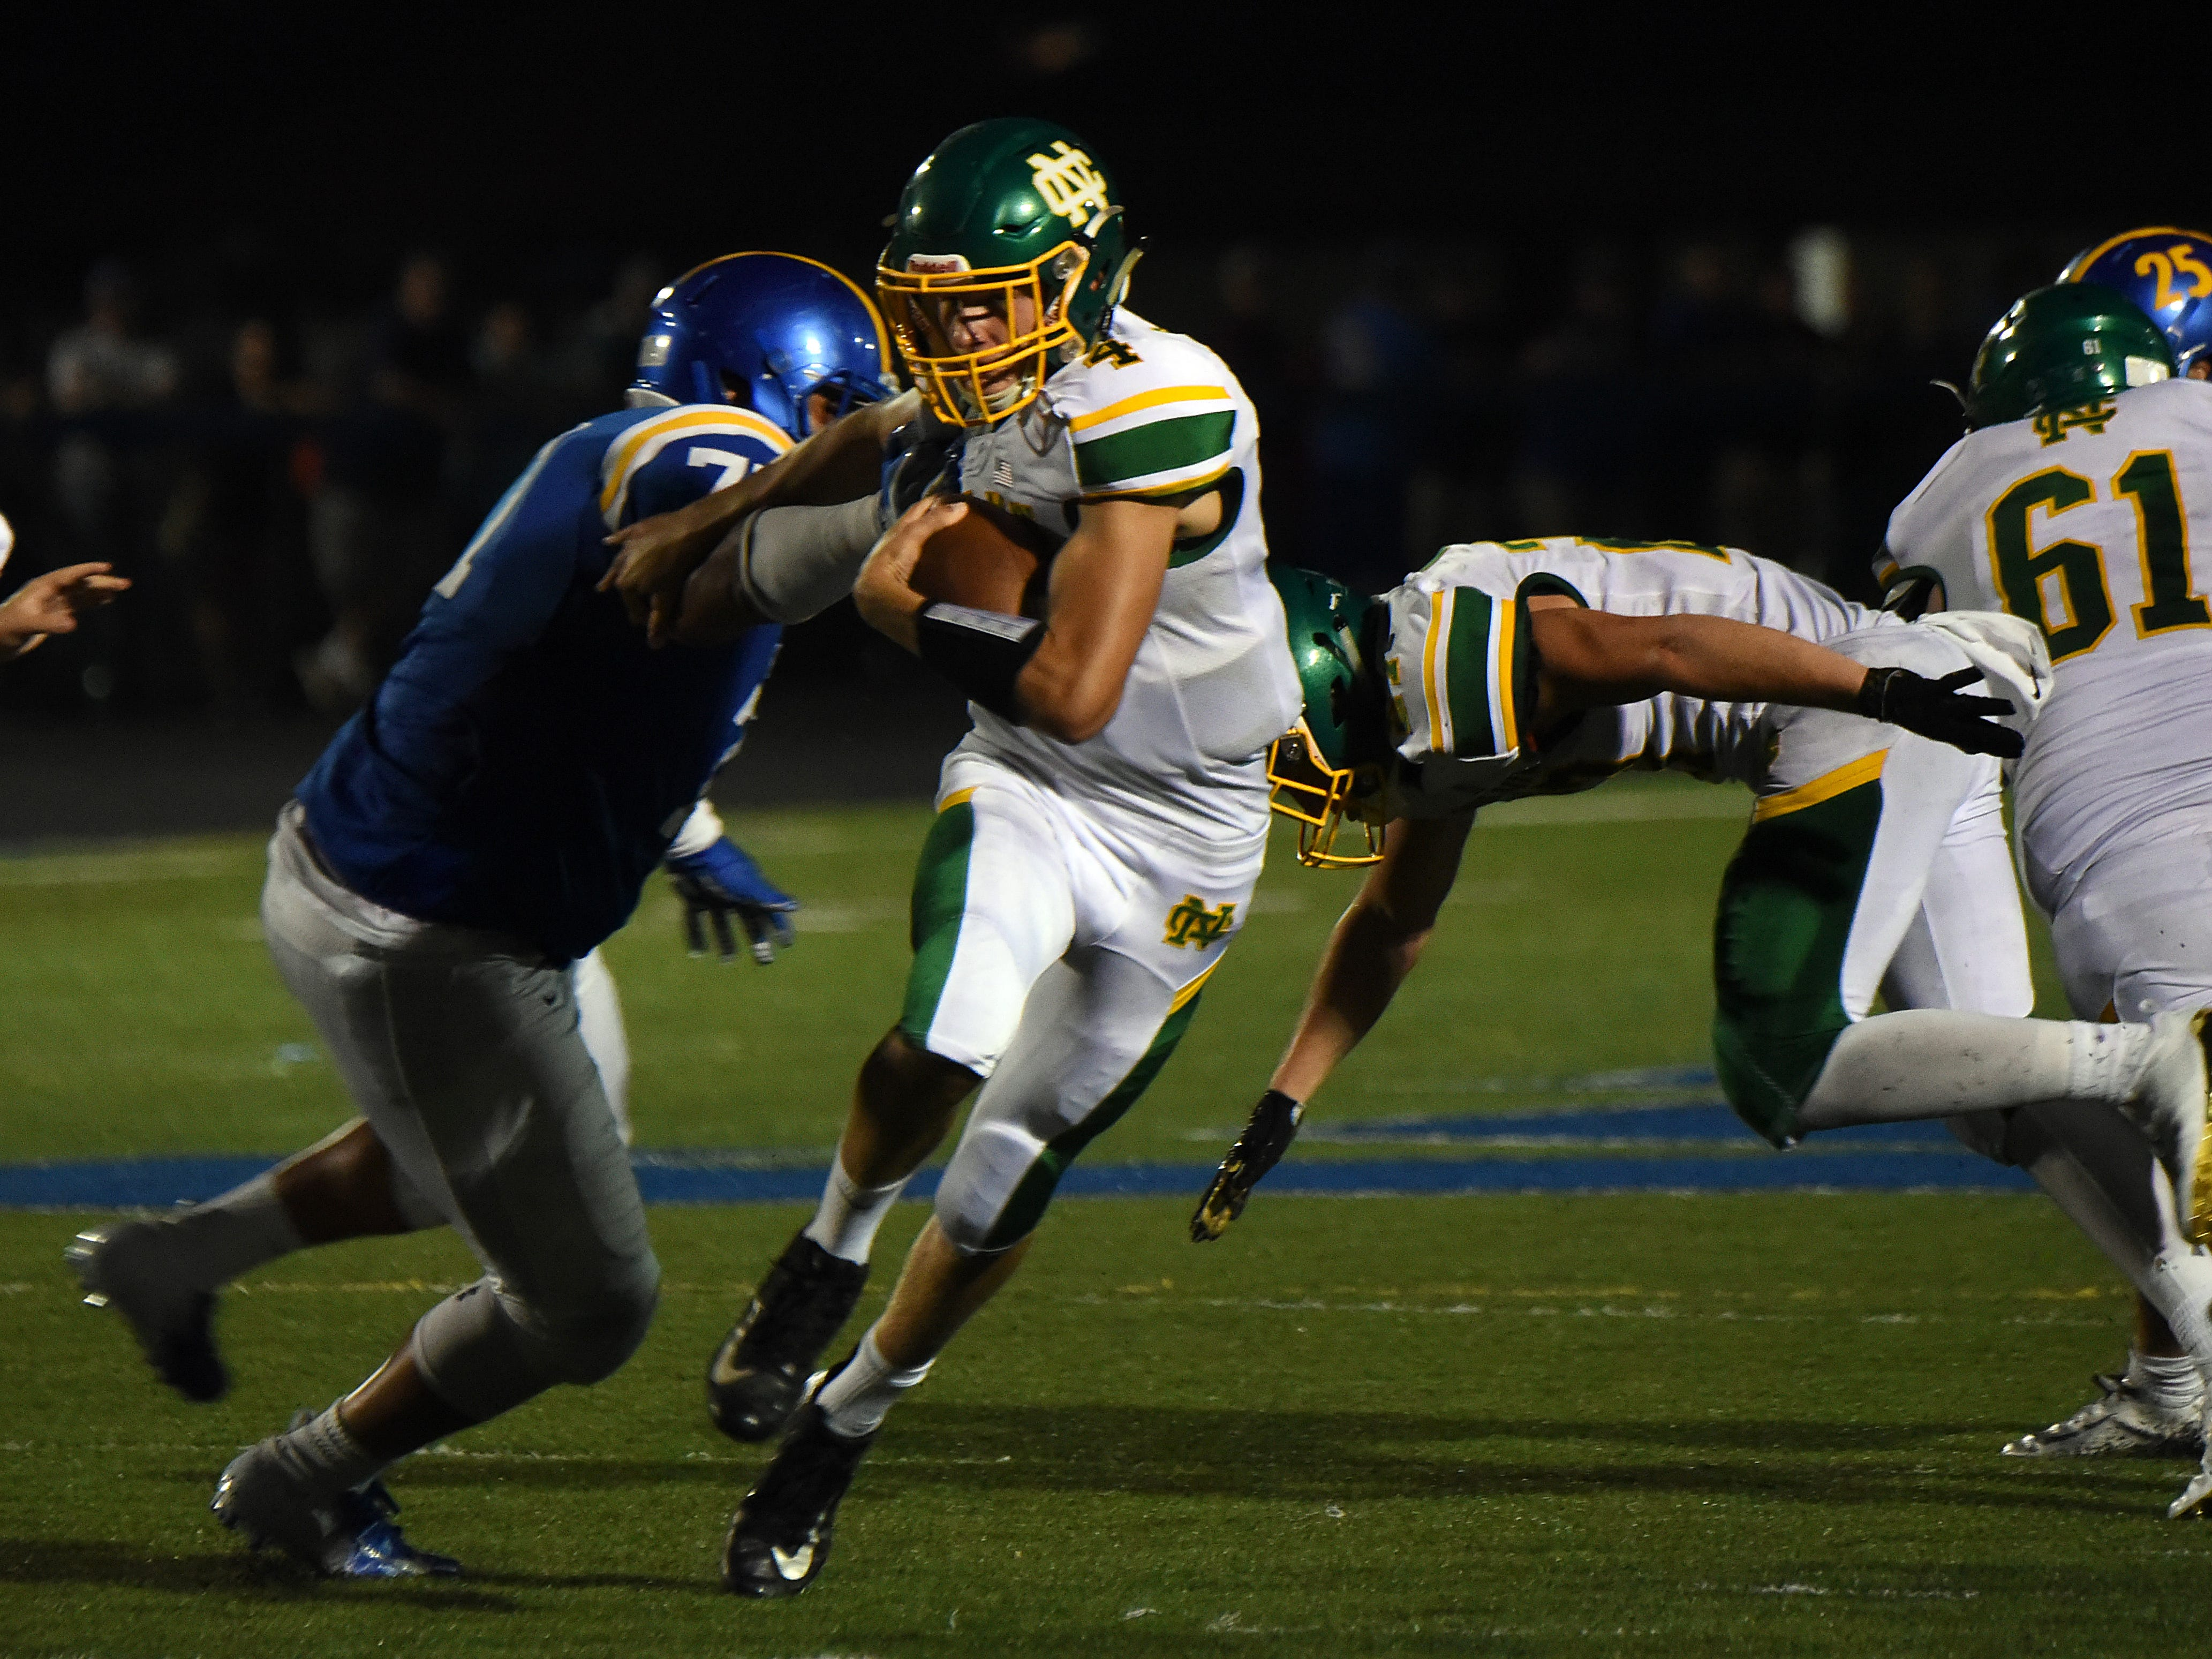 Newark Catholic quarterback Matt Carlisle finds an opening in the Maysville defense during Thursday night's season opener at Maysville. The Green Wave defeated the Panthers 17-13.